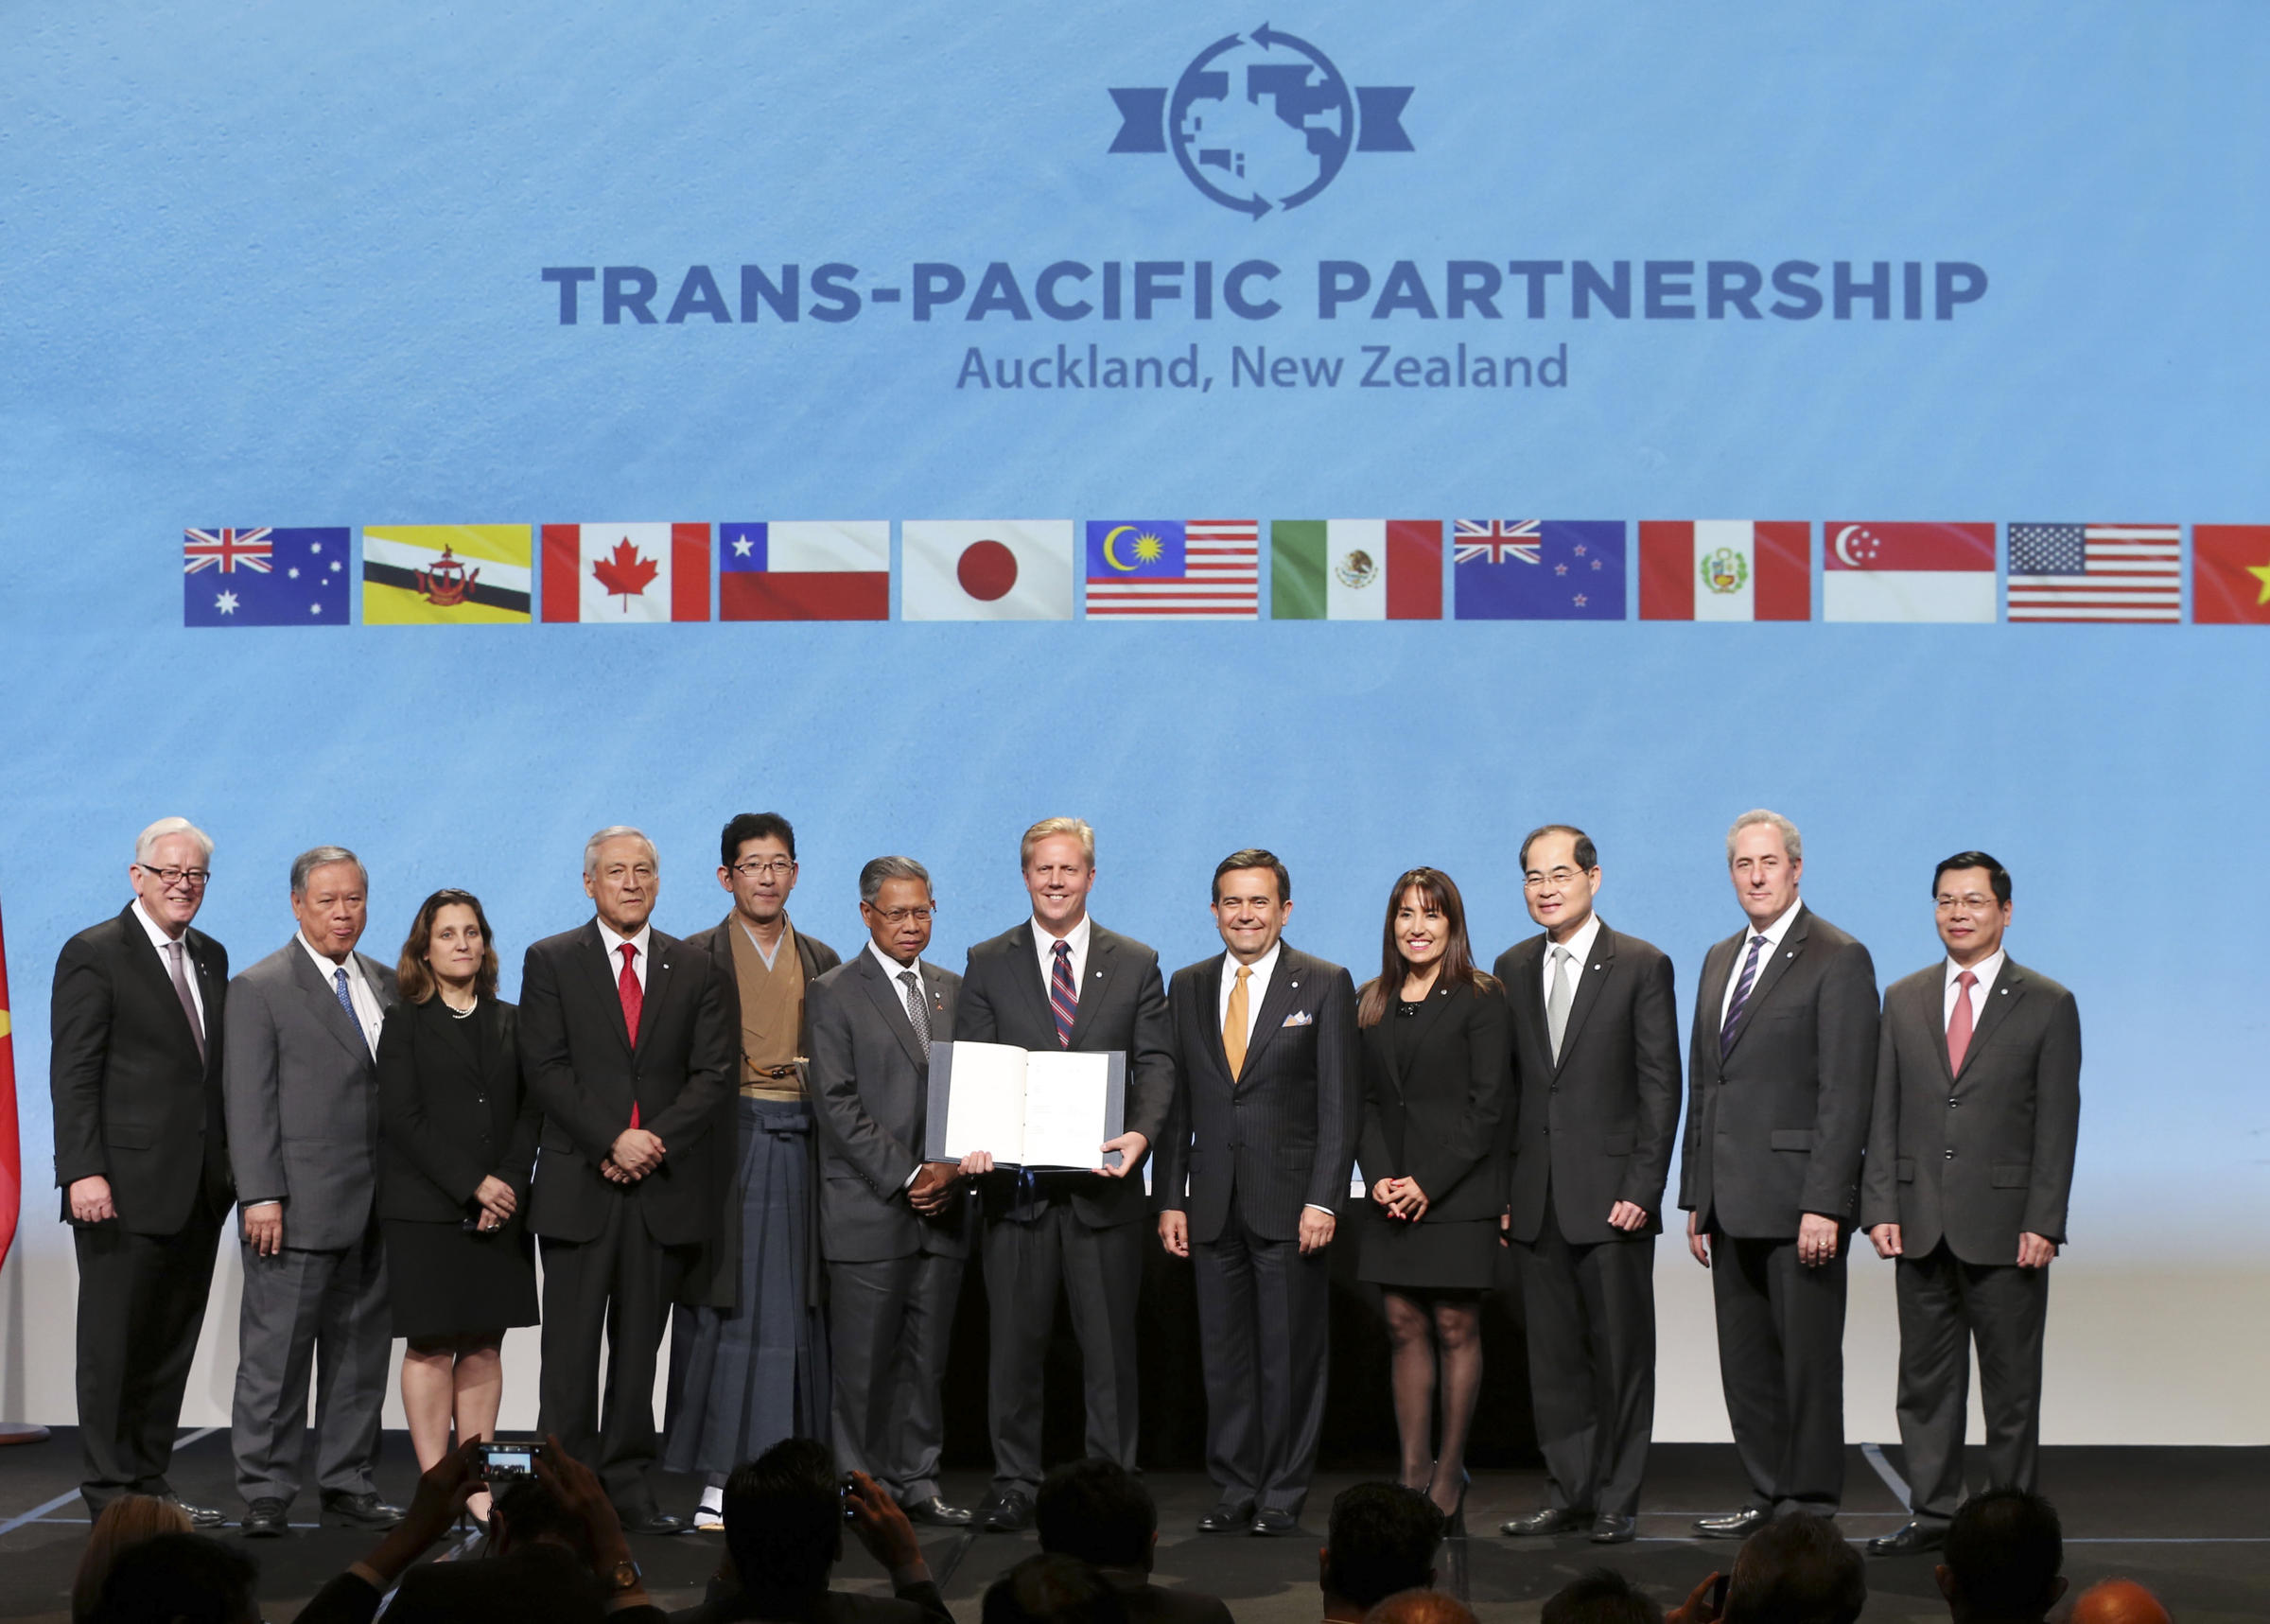 TPP Conference At Yale Highlights Winners And Losers   WSHU